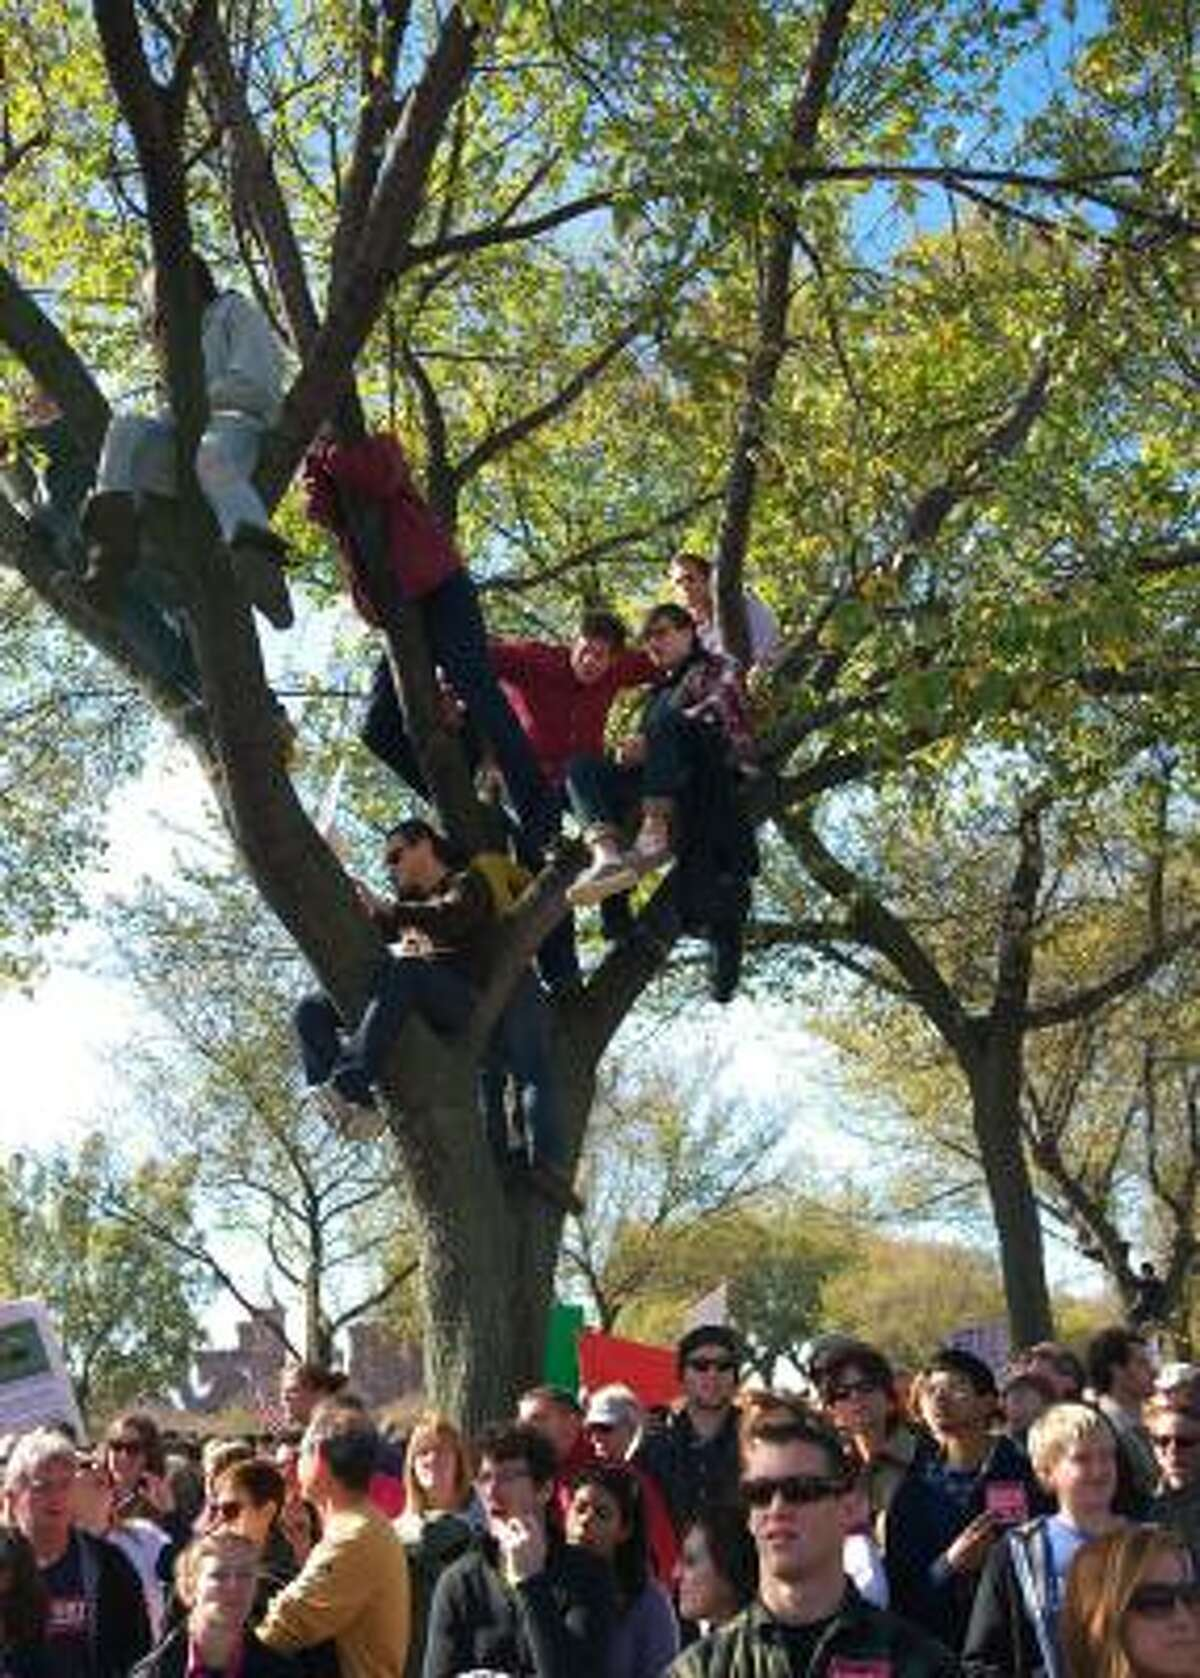 People attending the rally watch from a tree.